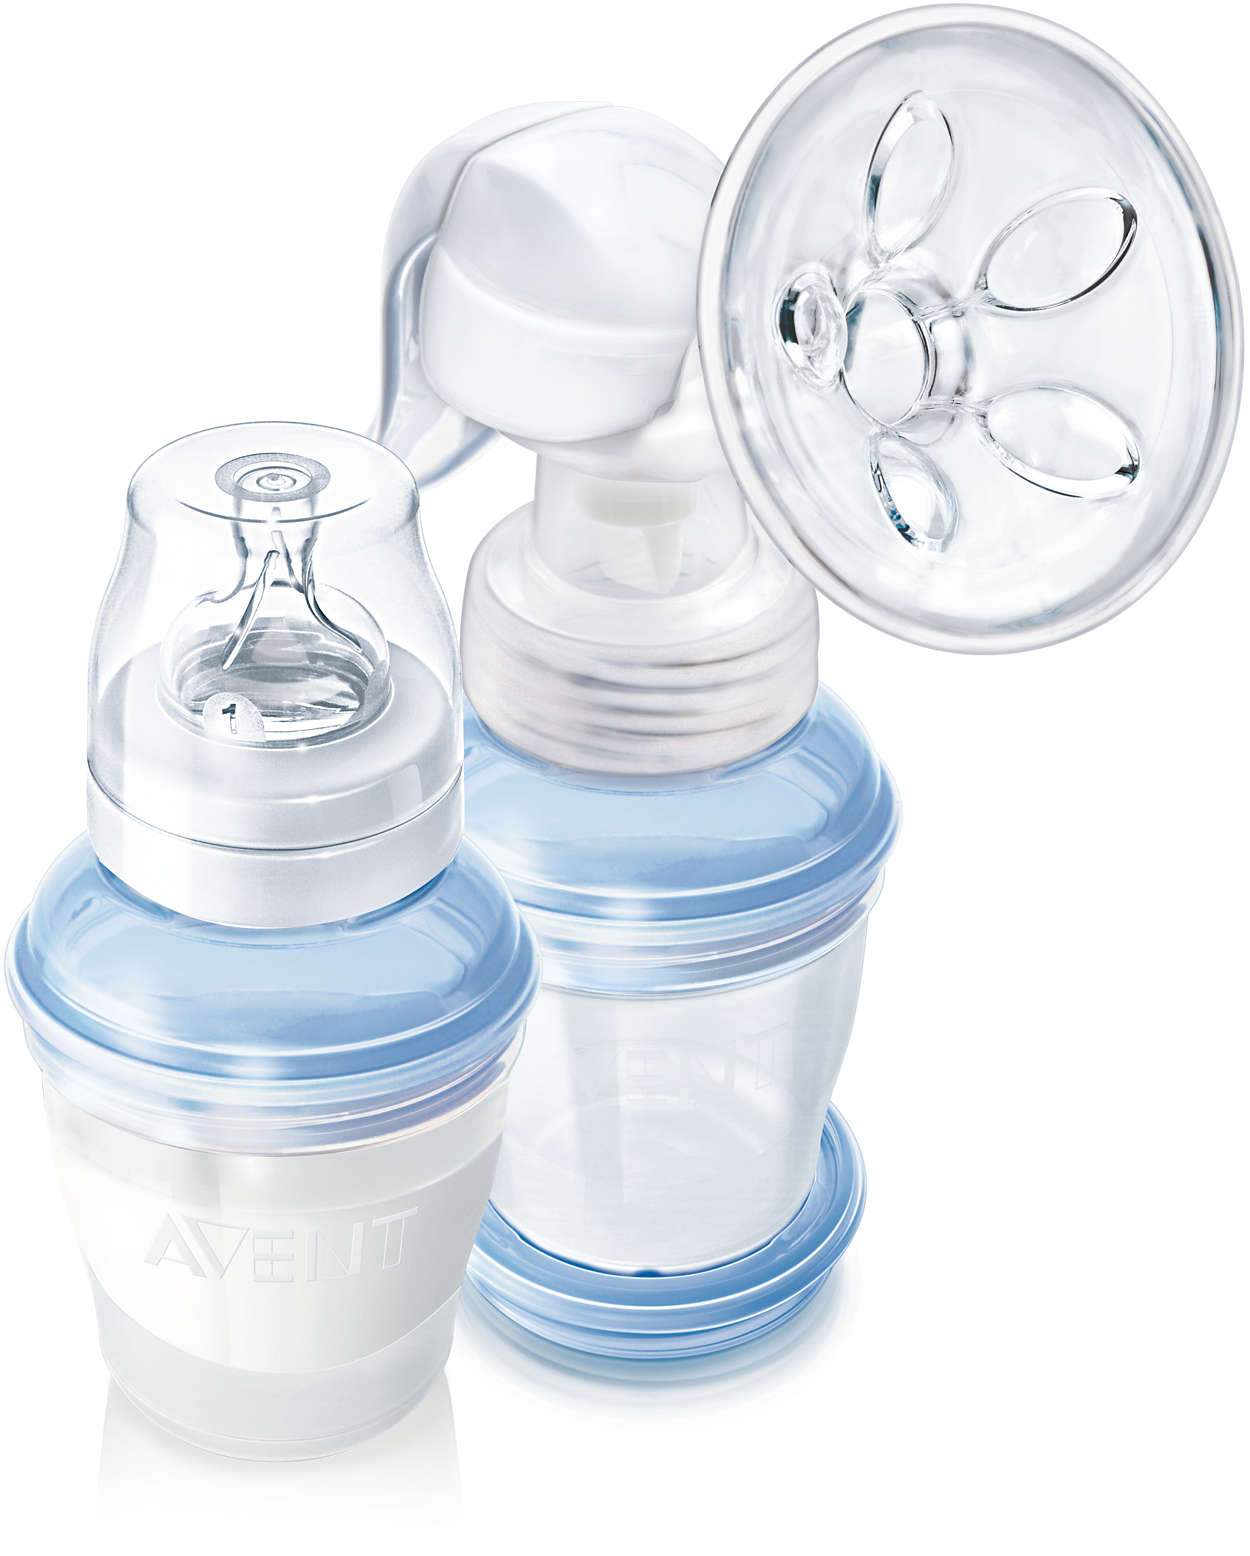 avent hand breast pump instructions